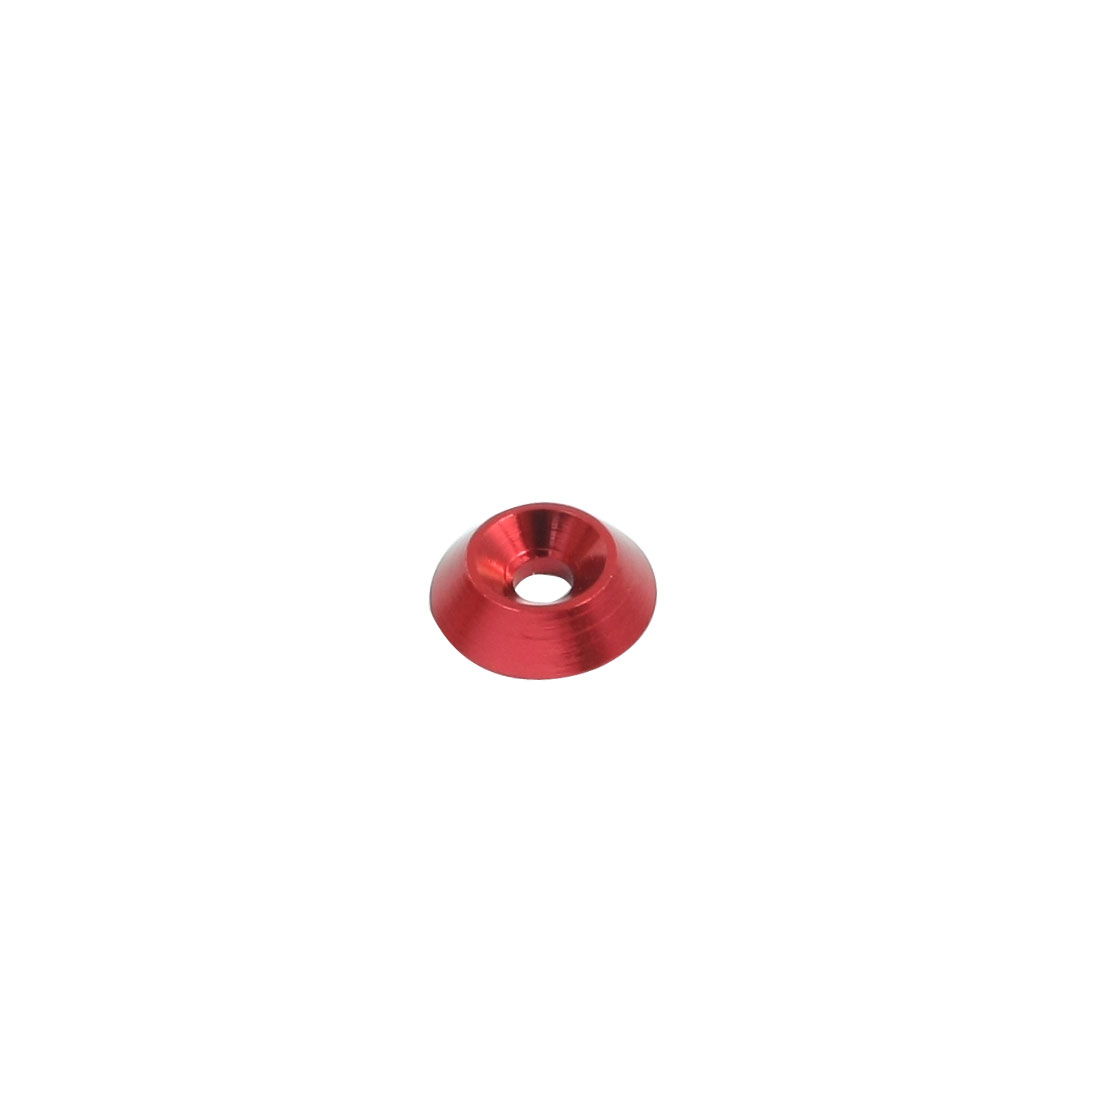 3mm x 12mm x 3mm Red Aluminium Alloy Countersink RC Washer Spacer Adaptor